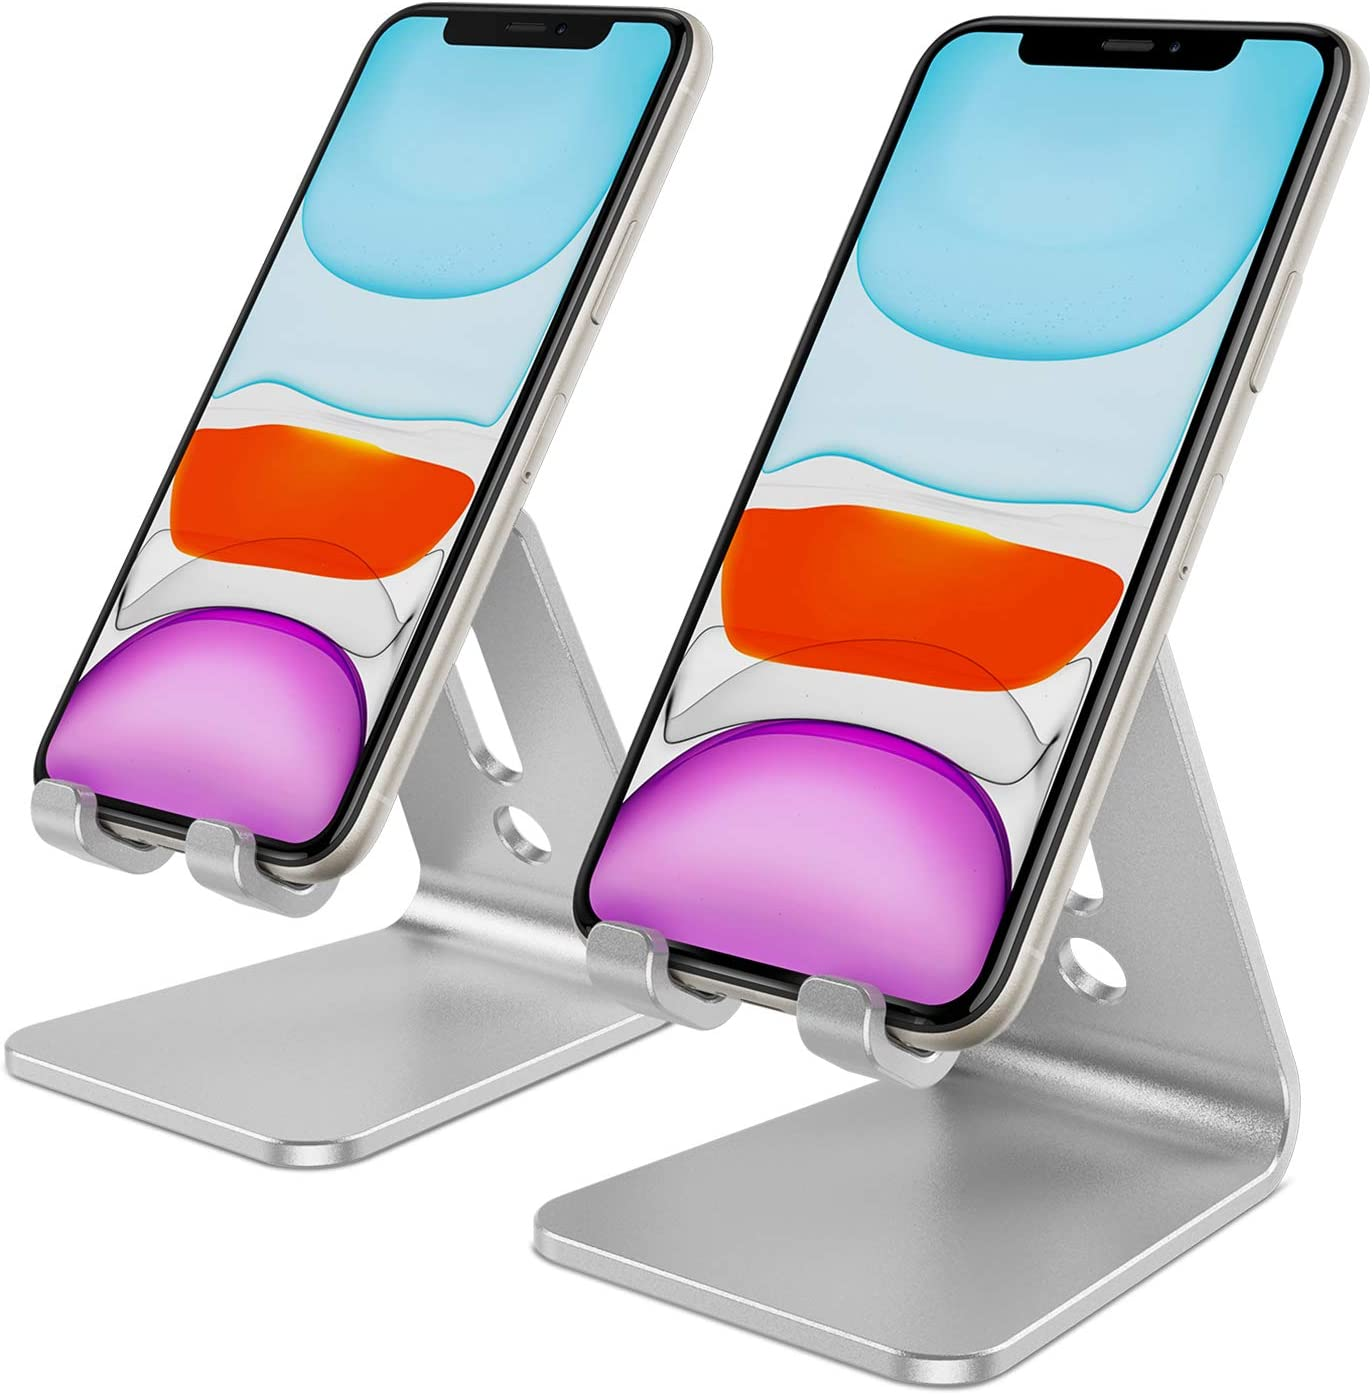 OMOTON [2 Pack] Cell Phone Stand Phone Holder for Desk, Desktop Cell Phone Stand Compatible for All iPhone and Android Smartphone (Silver)